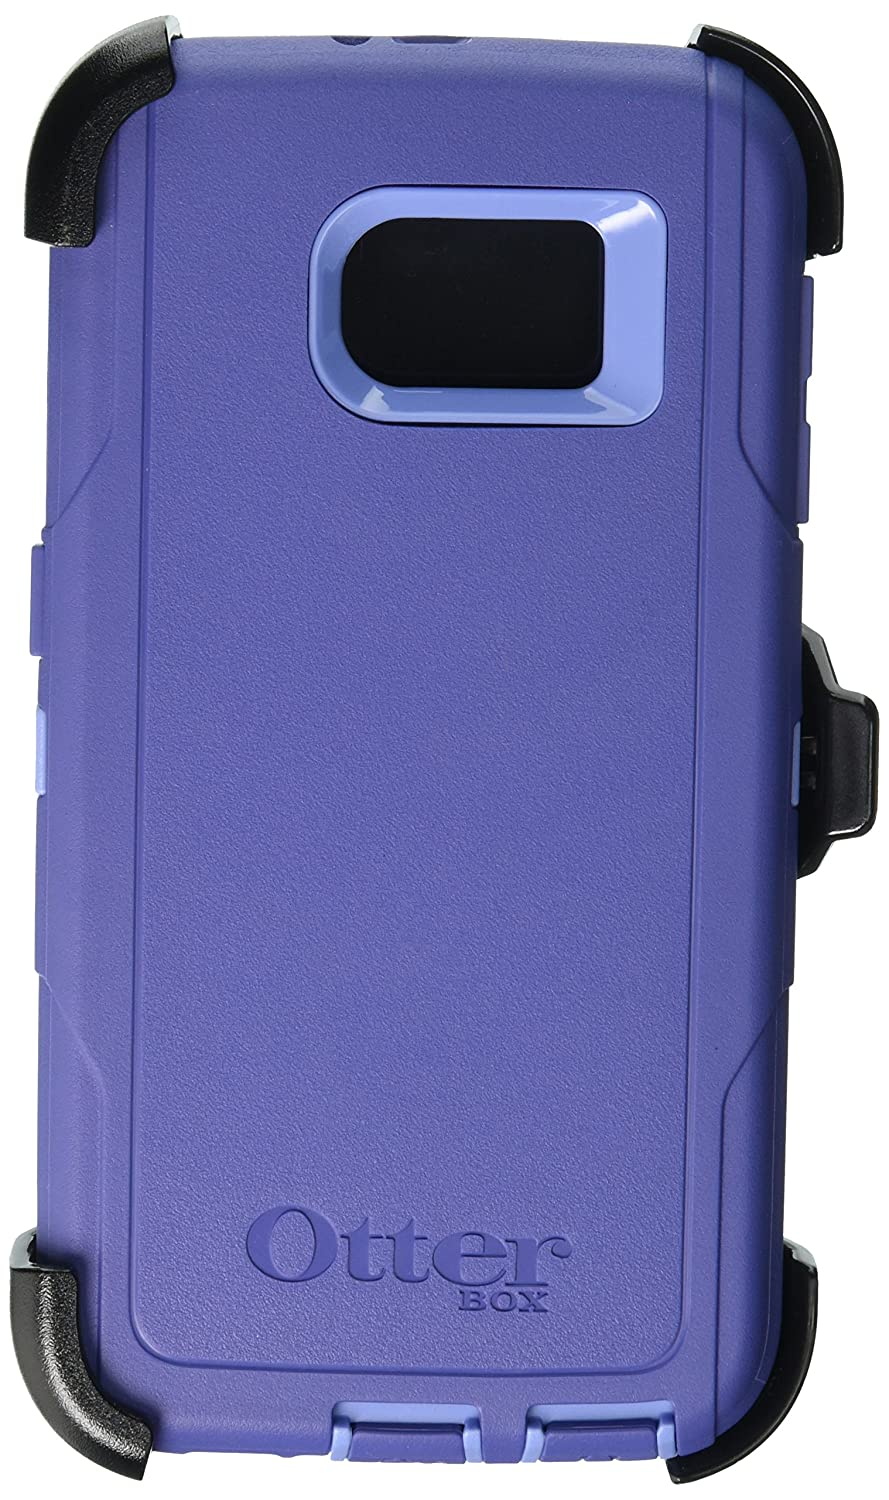 Otterbox Defender Series Case for Samsung Galaxy S6, Retail Packaging, PURPLE AMETHYST